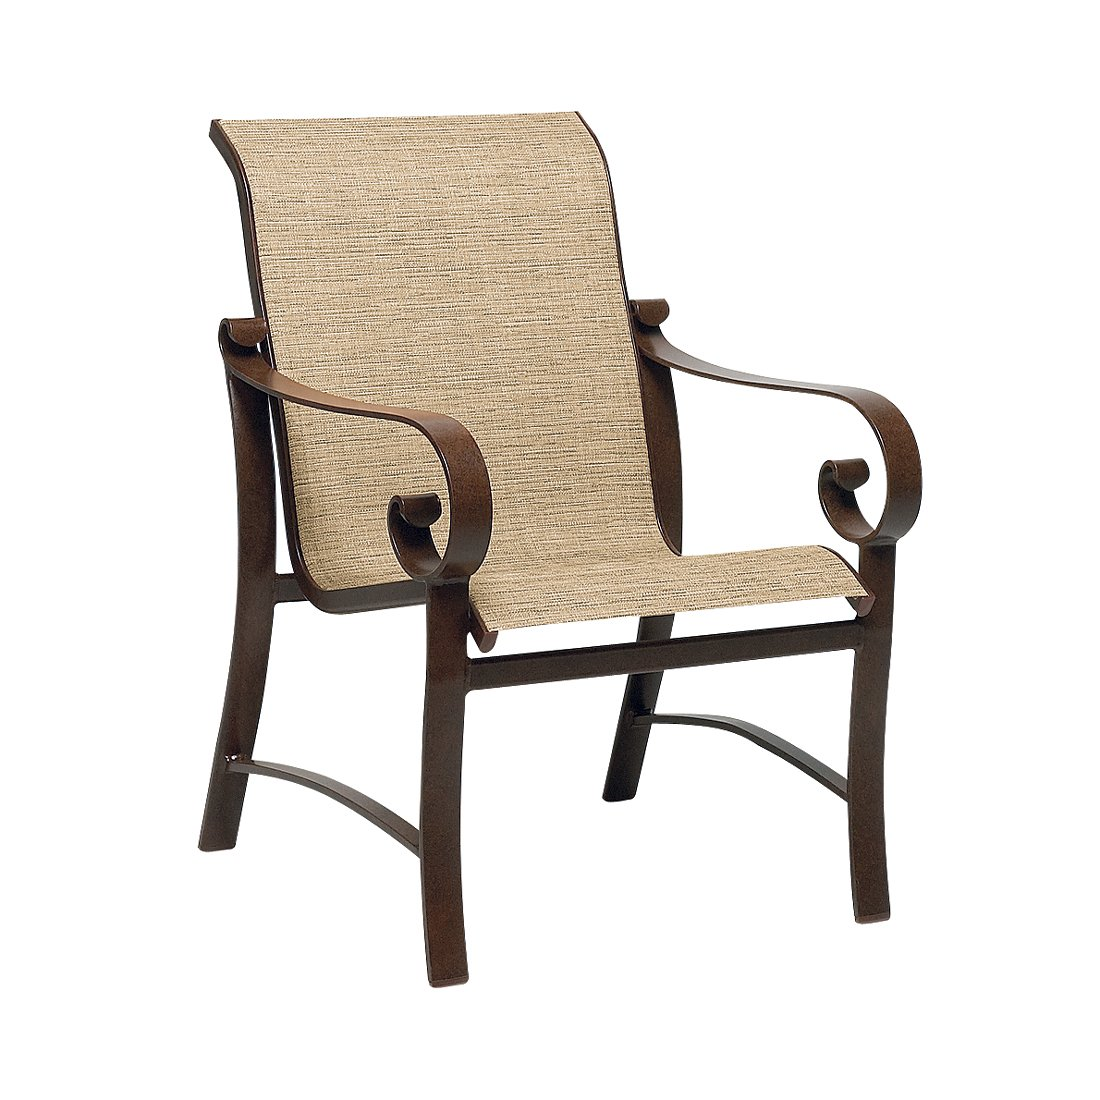 Design of Patio Sling Chairs